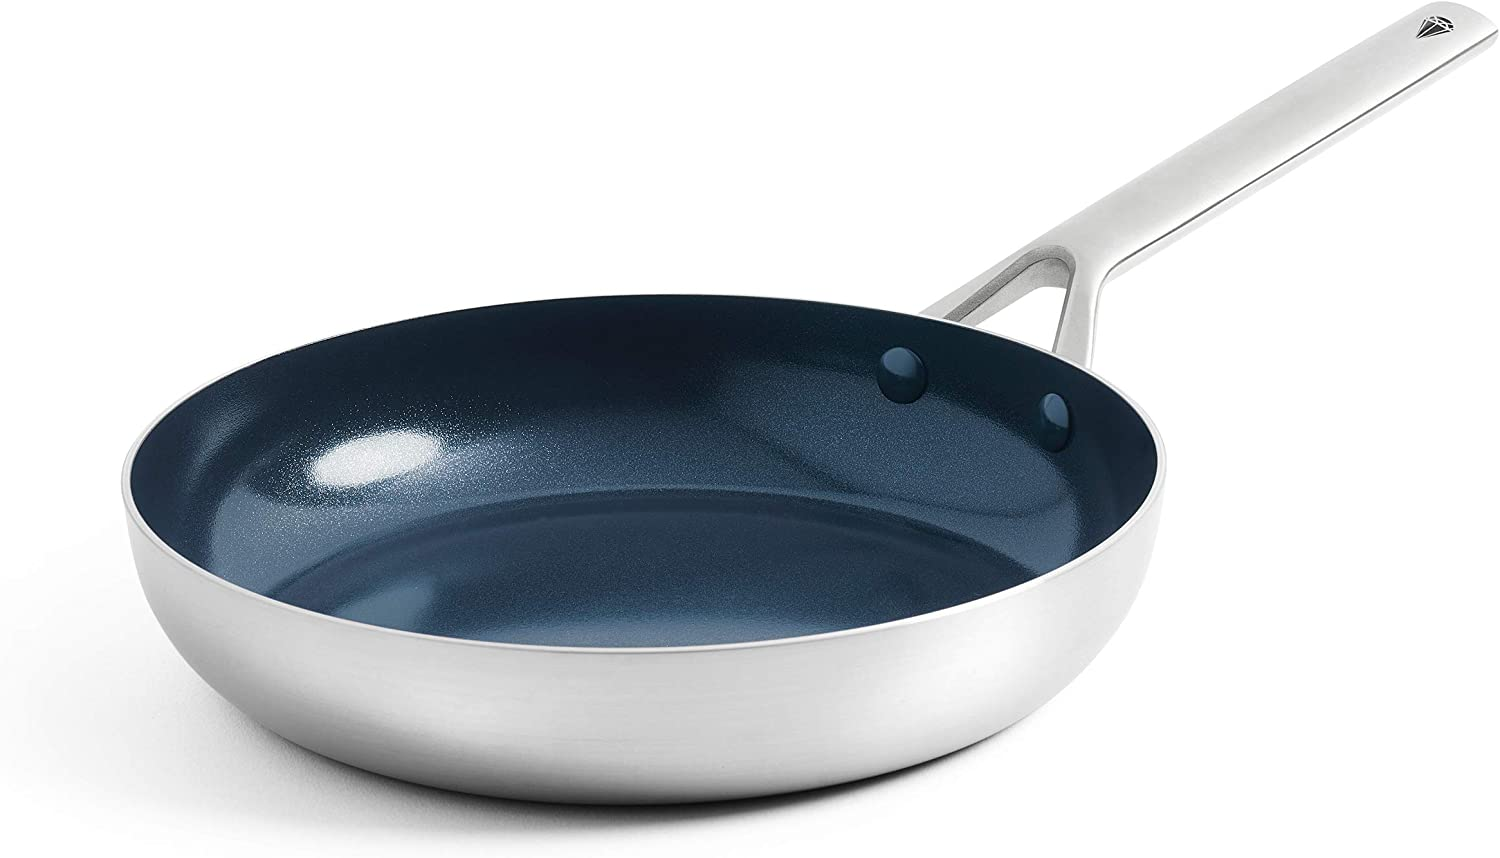 Blue Diamond Cookware Triple Steel Diamond-Infused Ceramic Nonstick Dishwasher, Oven, Broiler, Metal Utensil Safe Stainles